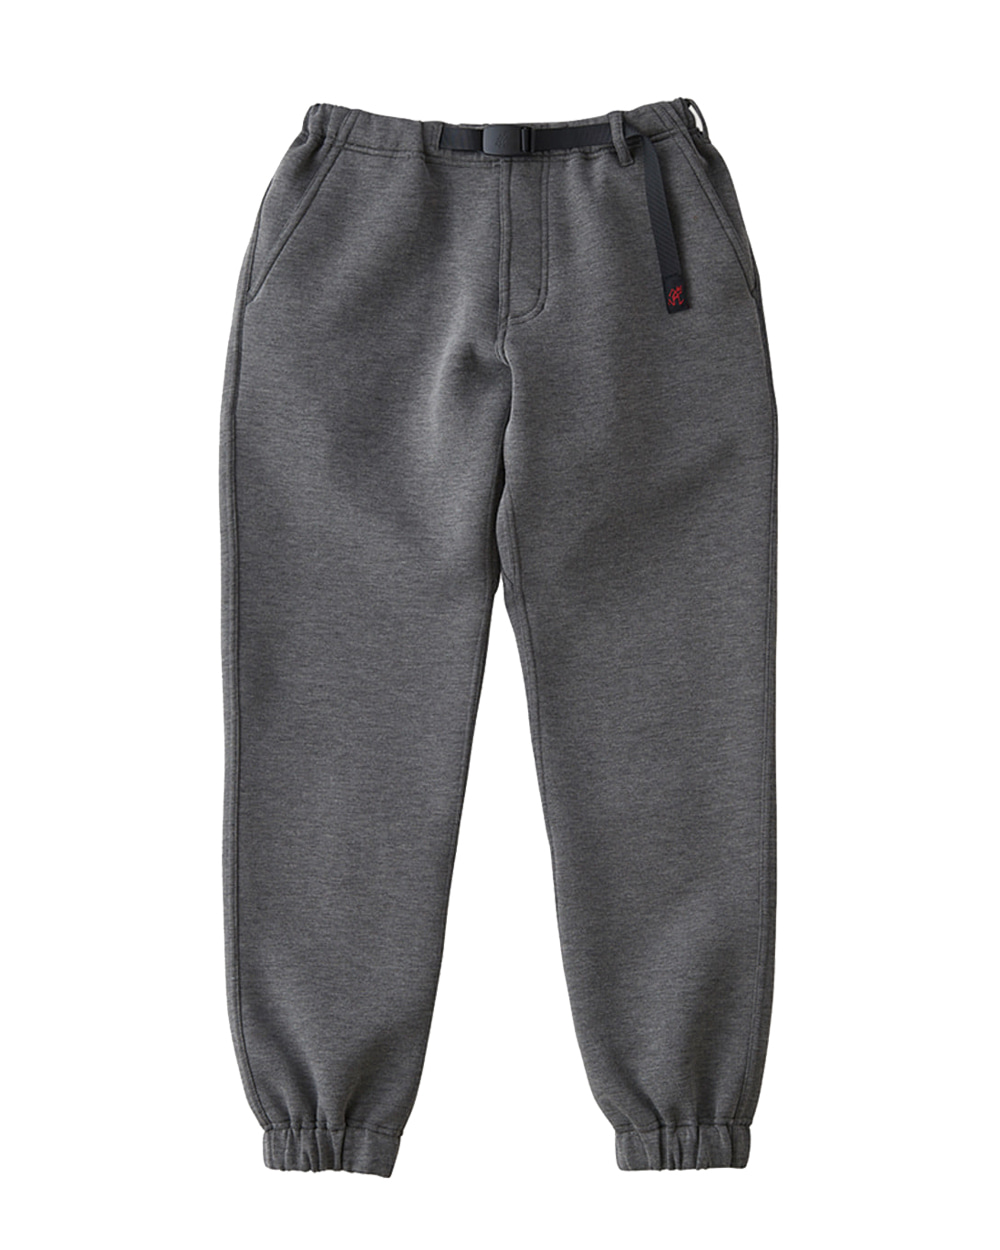 그라미치 TECH KNIT TRUCK PANTS (Heather charcoal)